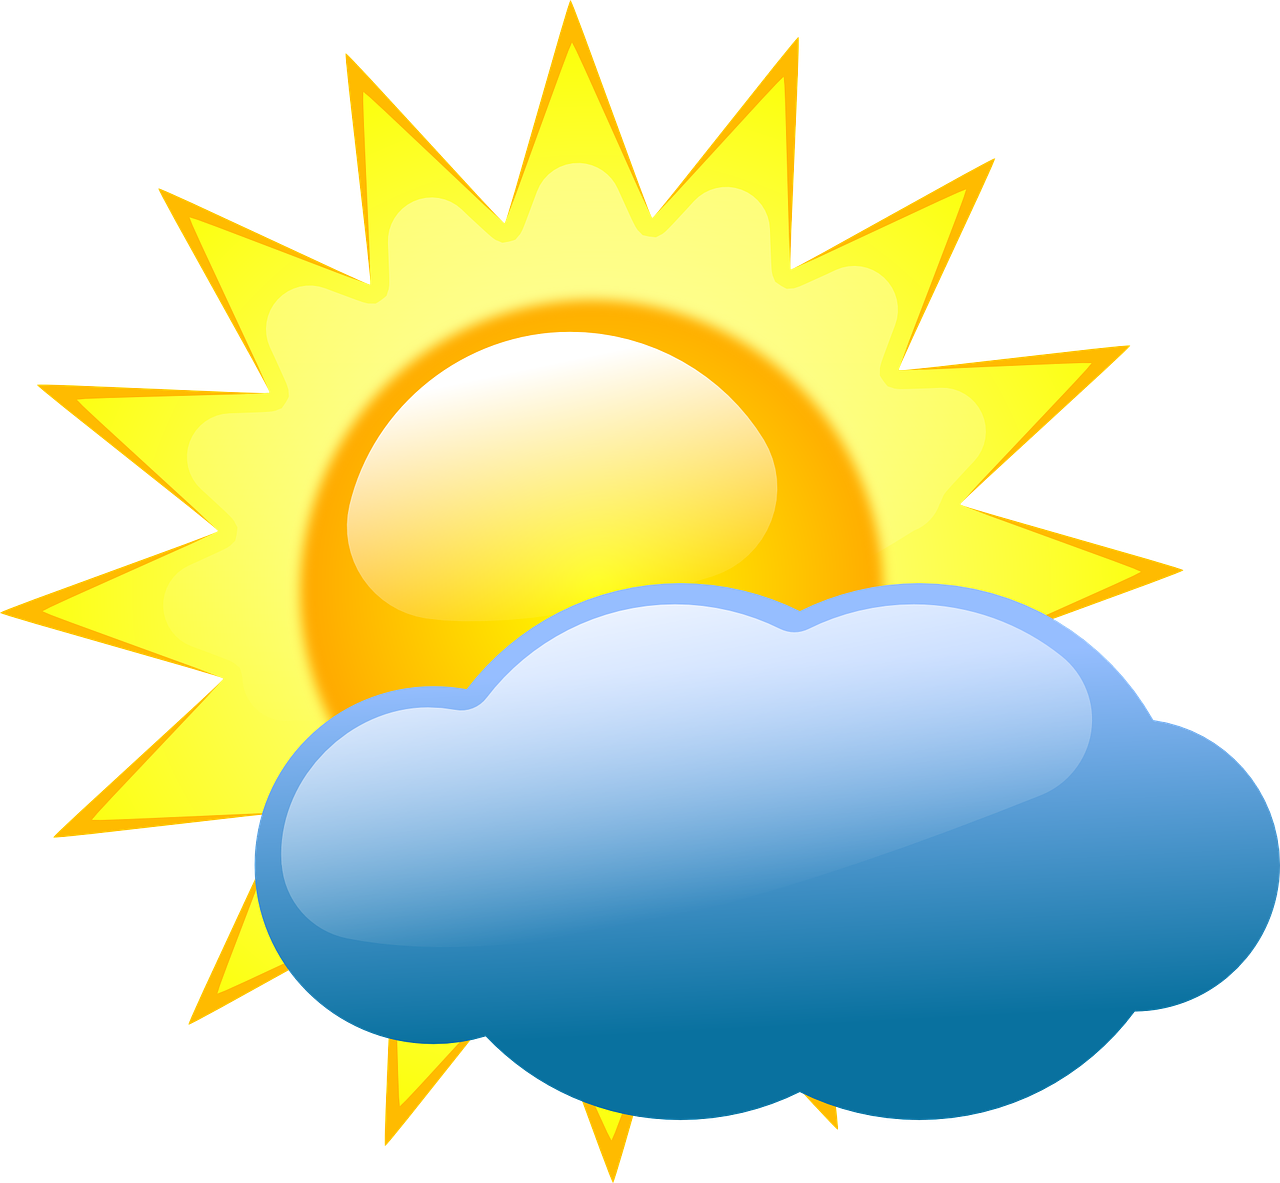 Sunny clipart climate. A warm welcome to